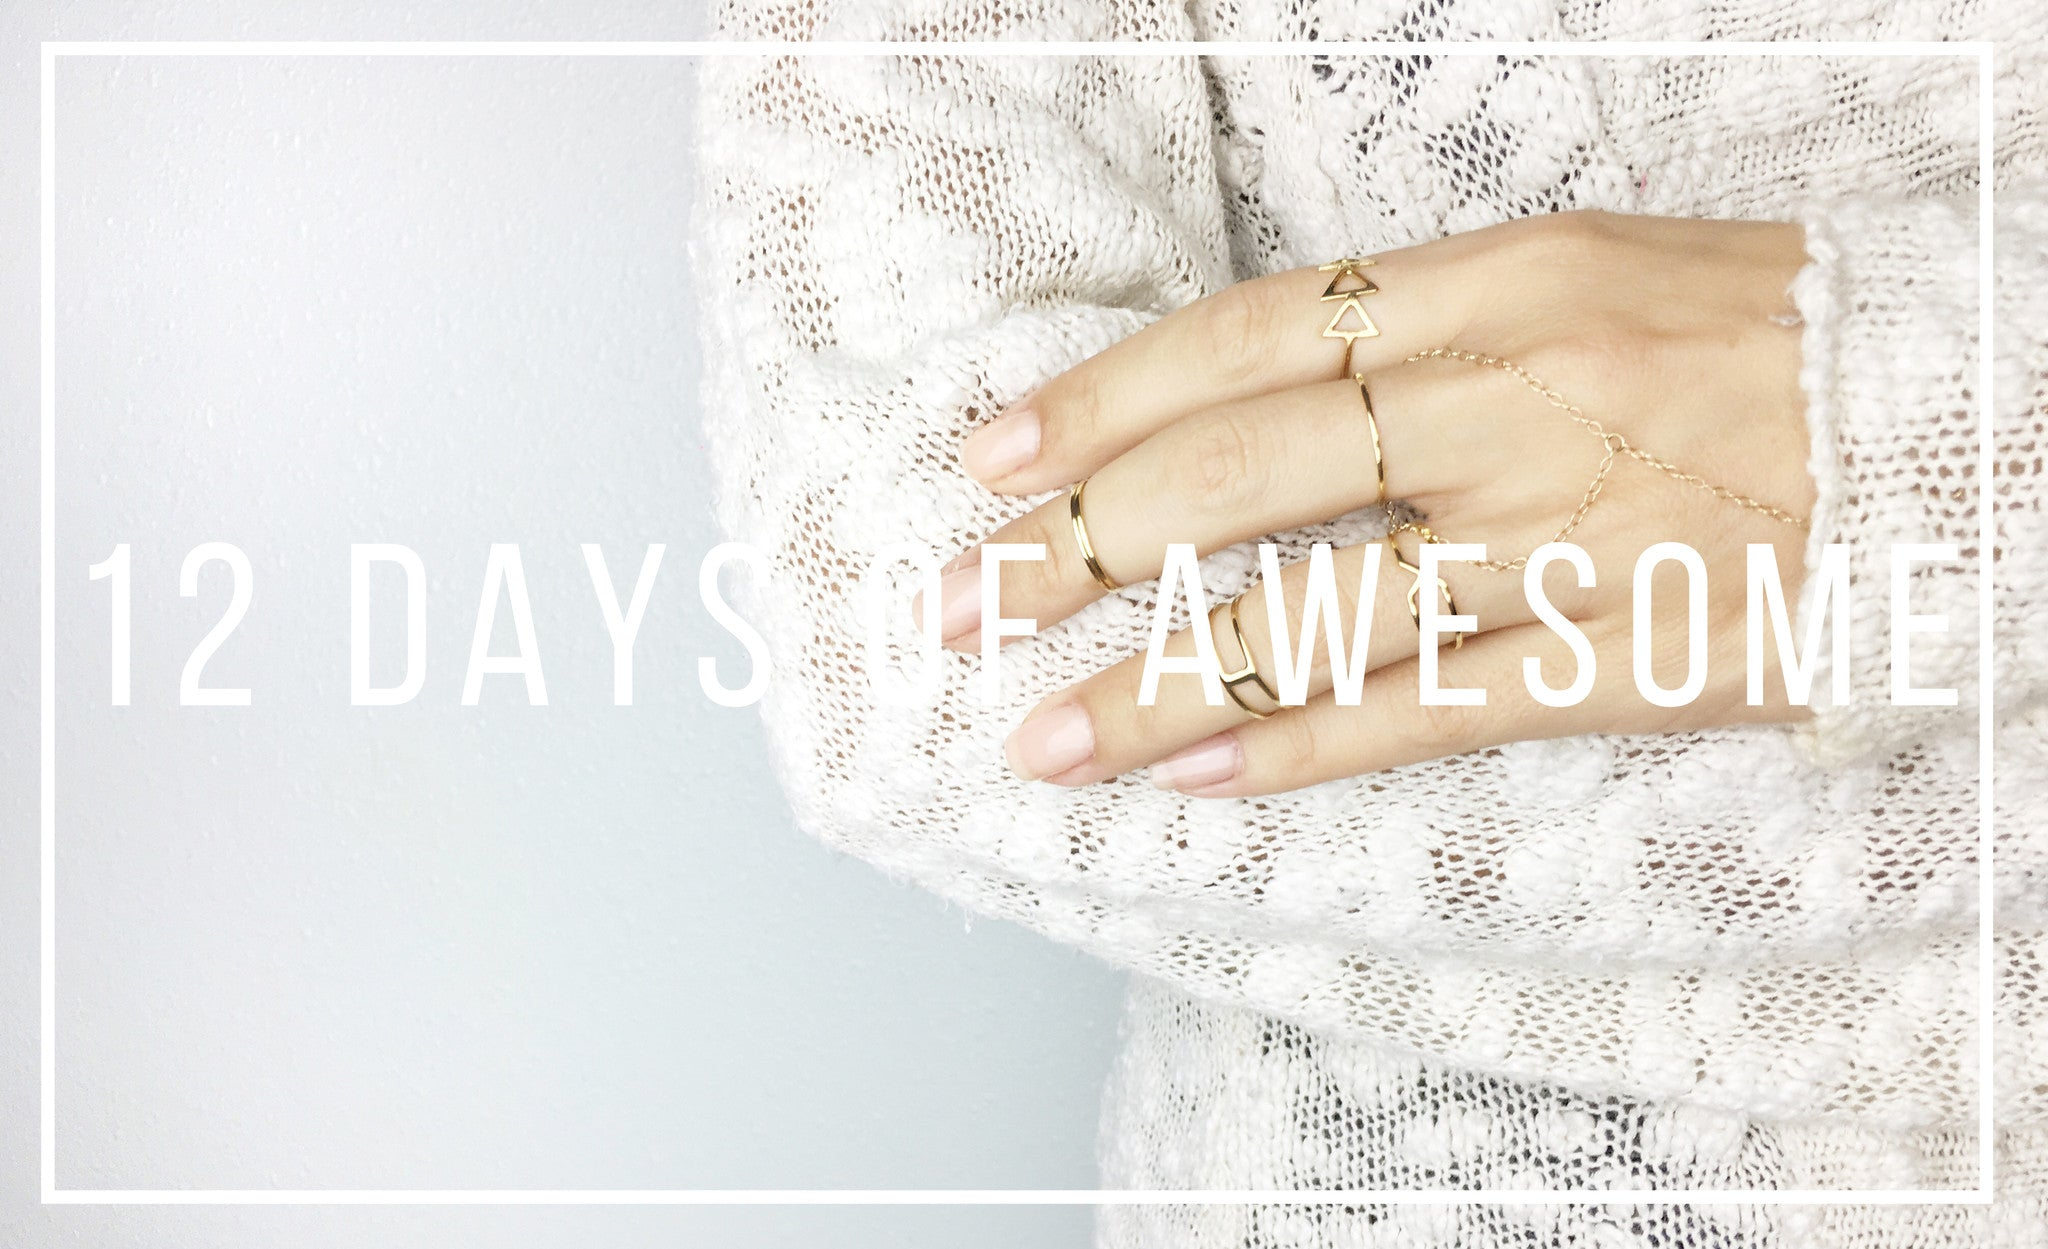 12 Days of Awesome